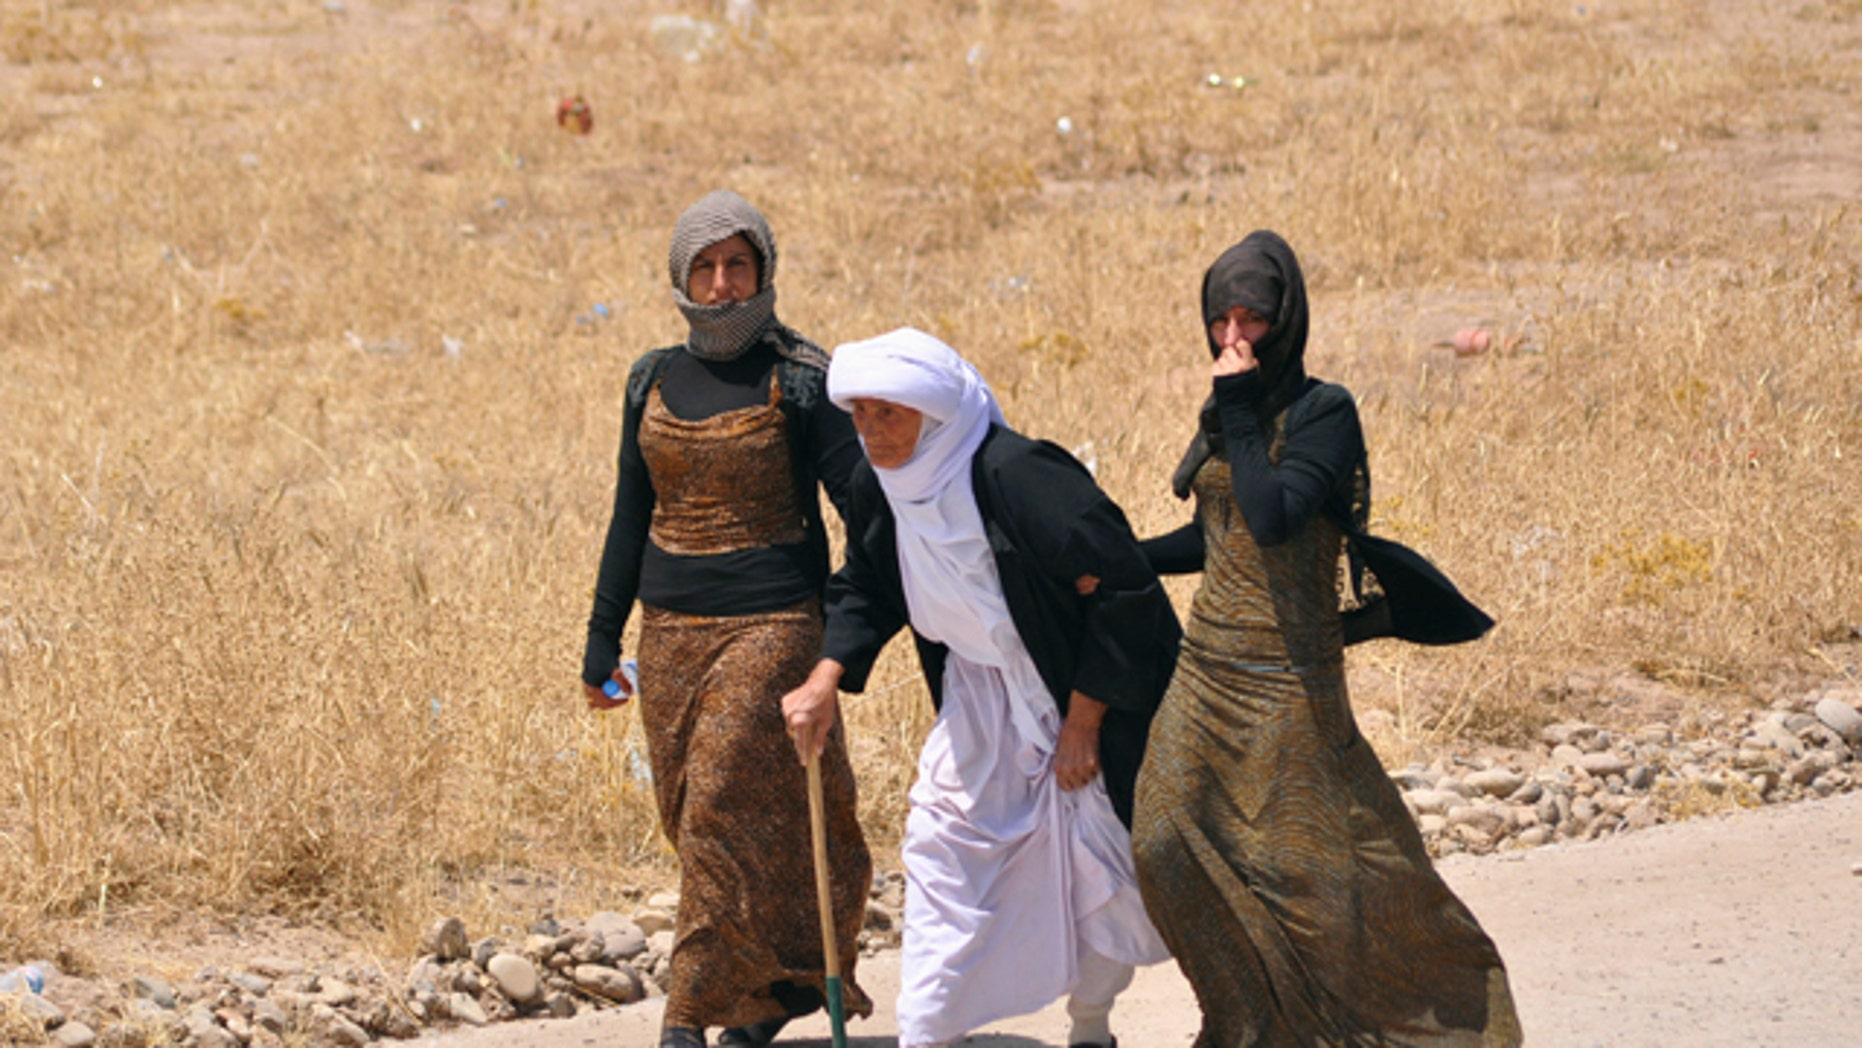 August 5, 2014: Displaced families from the minority Yazidi sect, fleeing the violence, walk on the outskirts of Sinjar, west of Mosul. (REUTERS)